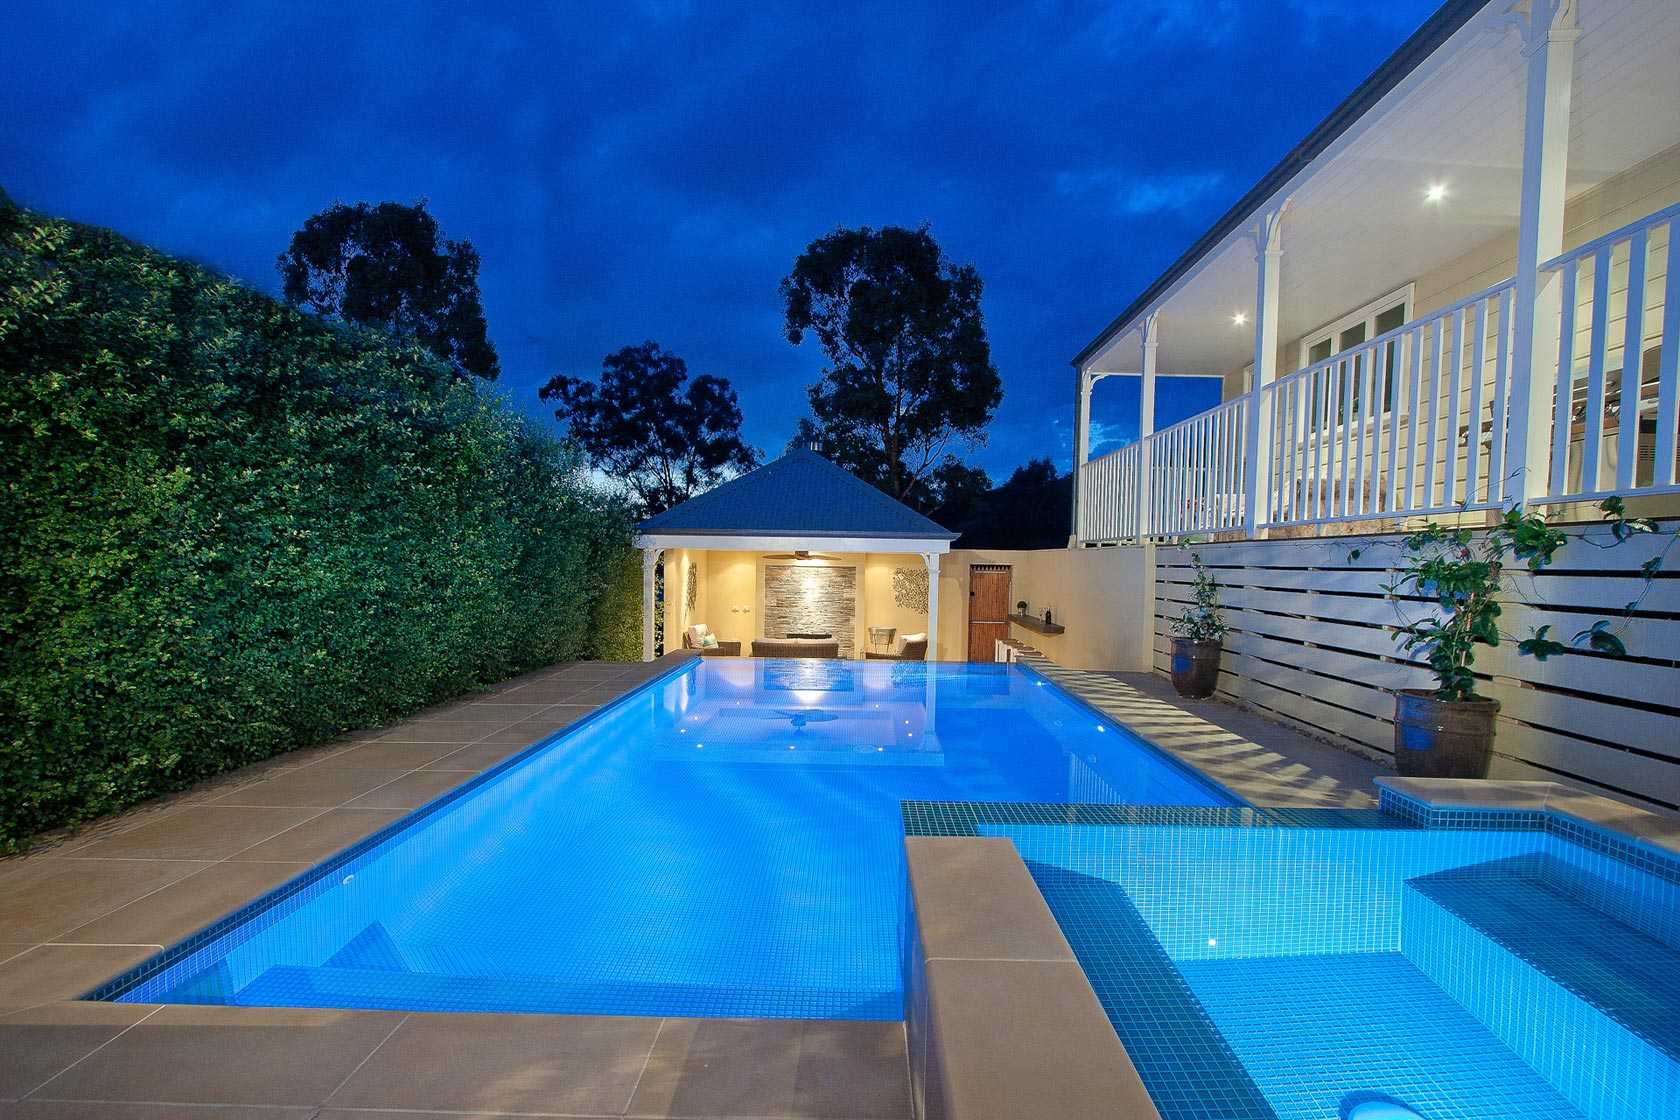 Landscape pool designs melbourne pdf for Pool design by poolside